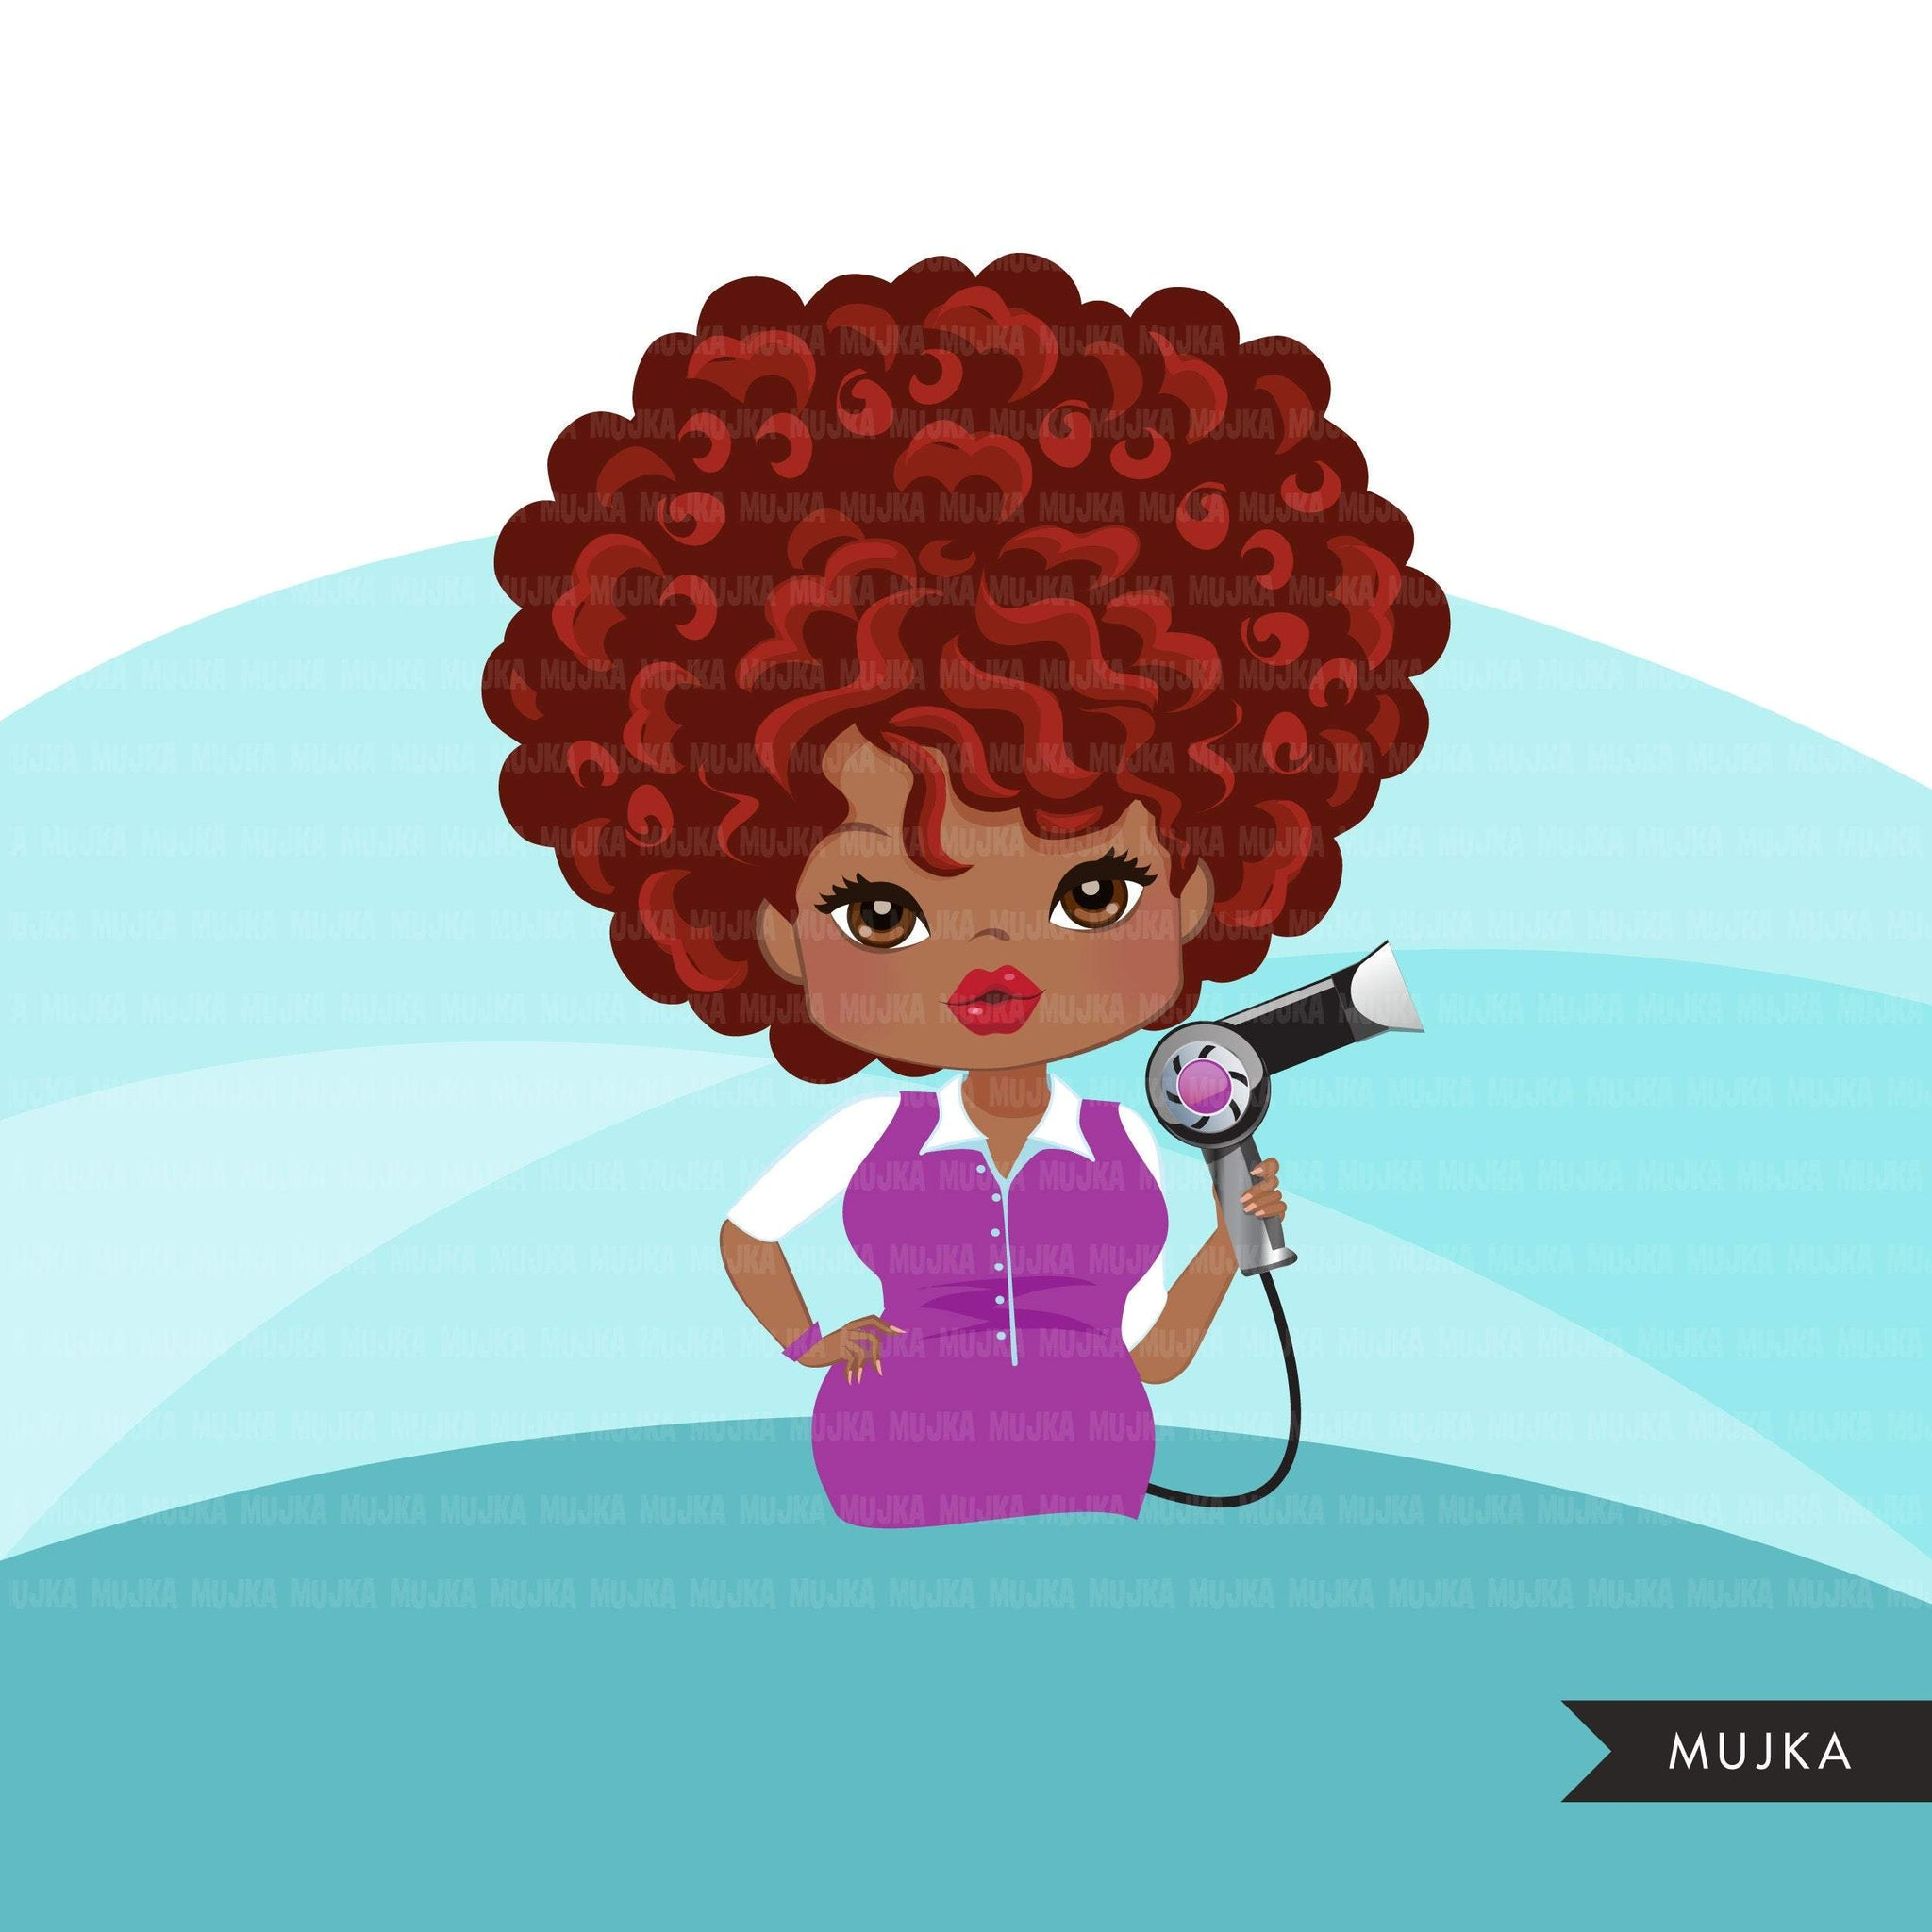 Hair stylist black woman clipart avatar with hairdryer, print and cut, shop logo boss afro hairdresser clip art graphics